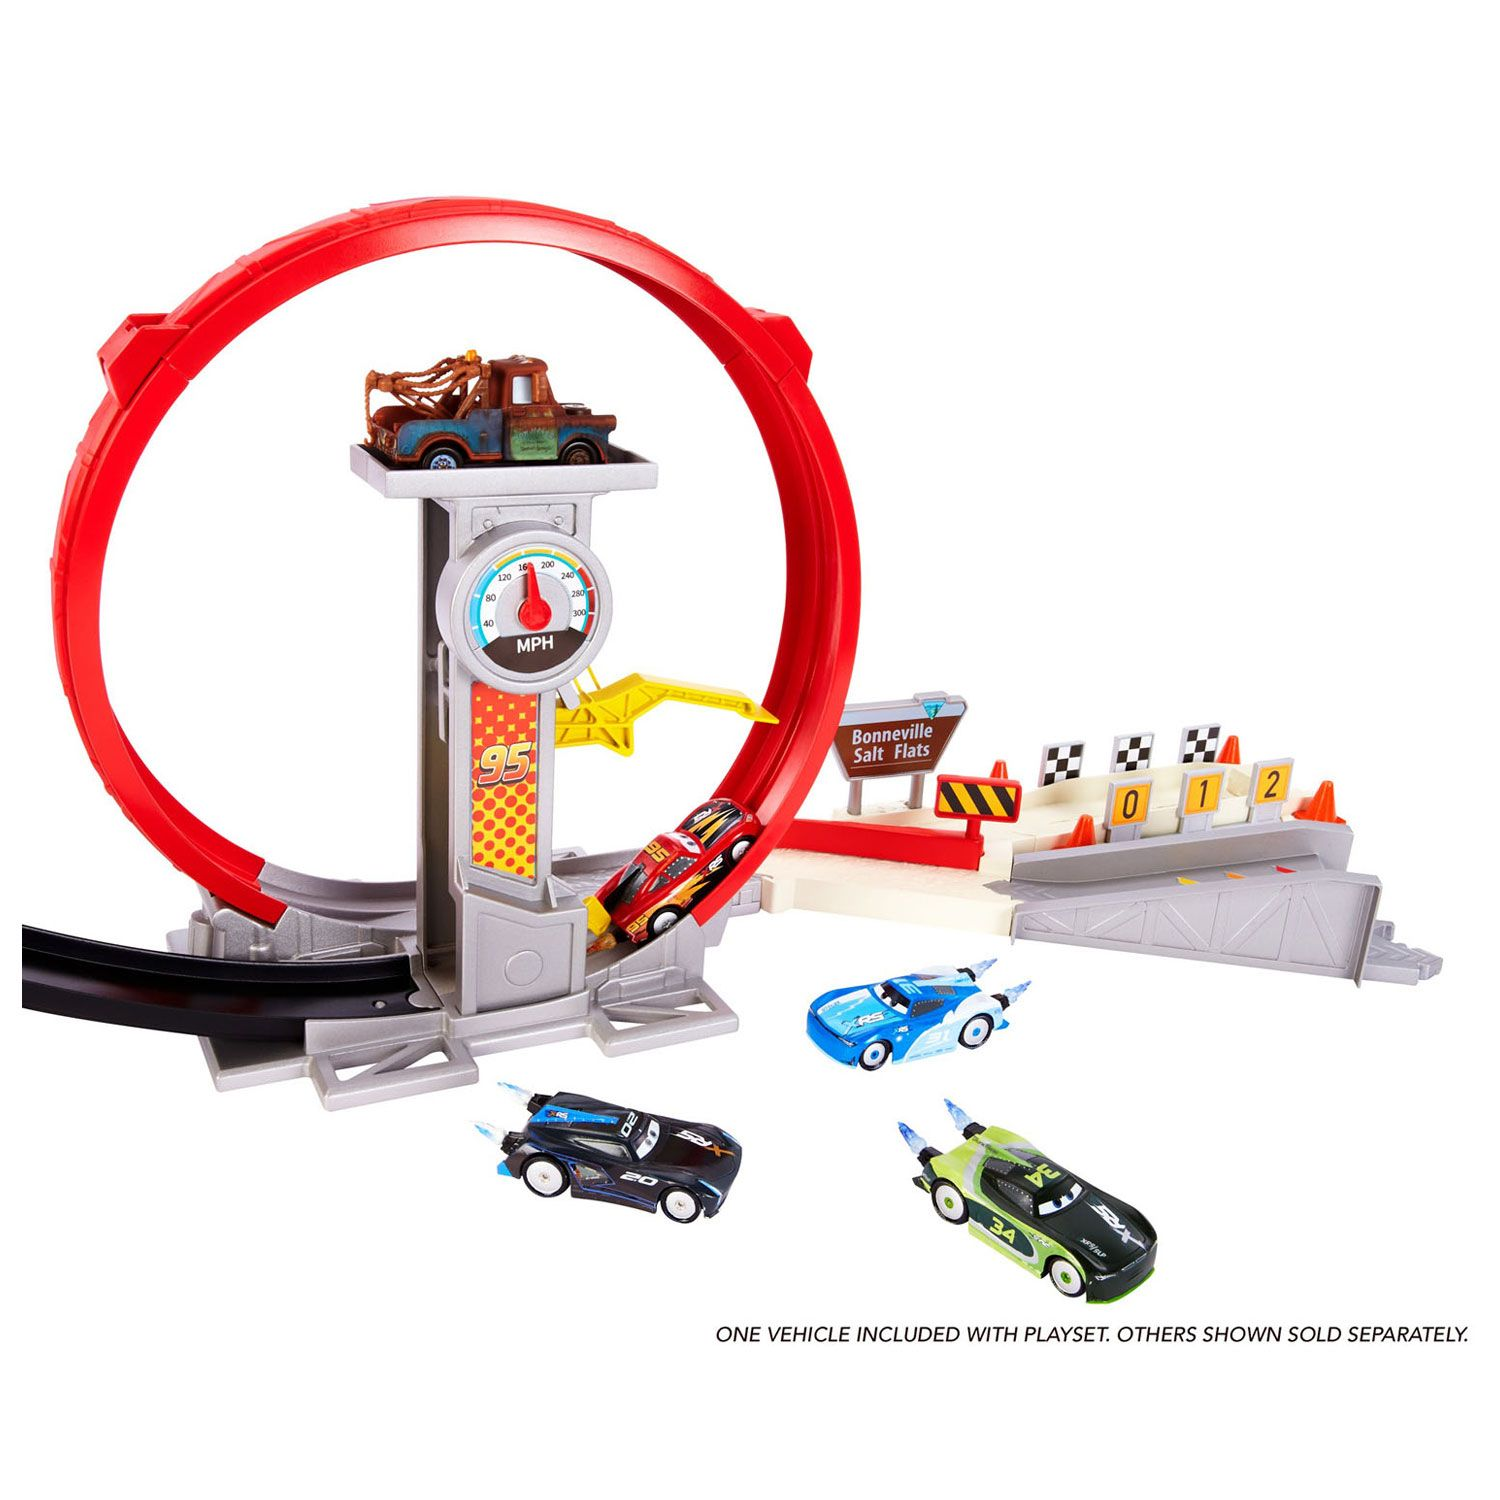 Pin By Blake Van Note On Hot Wheels Room In 2020 Hot Wheels Room Disney Pixar Cars Race Cars